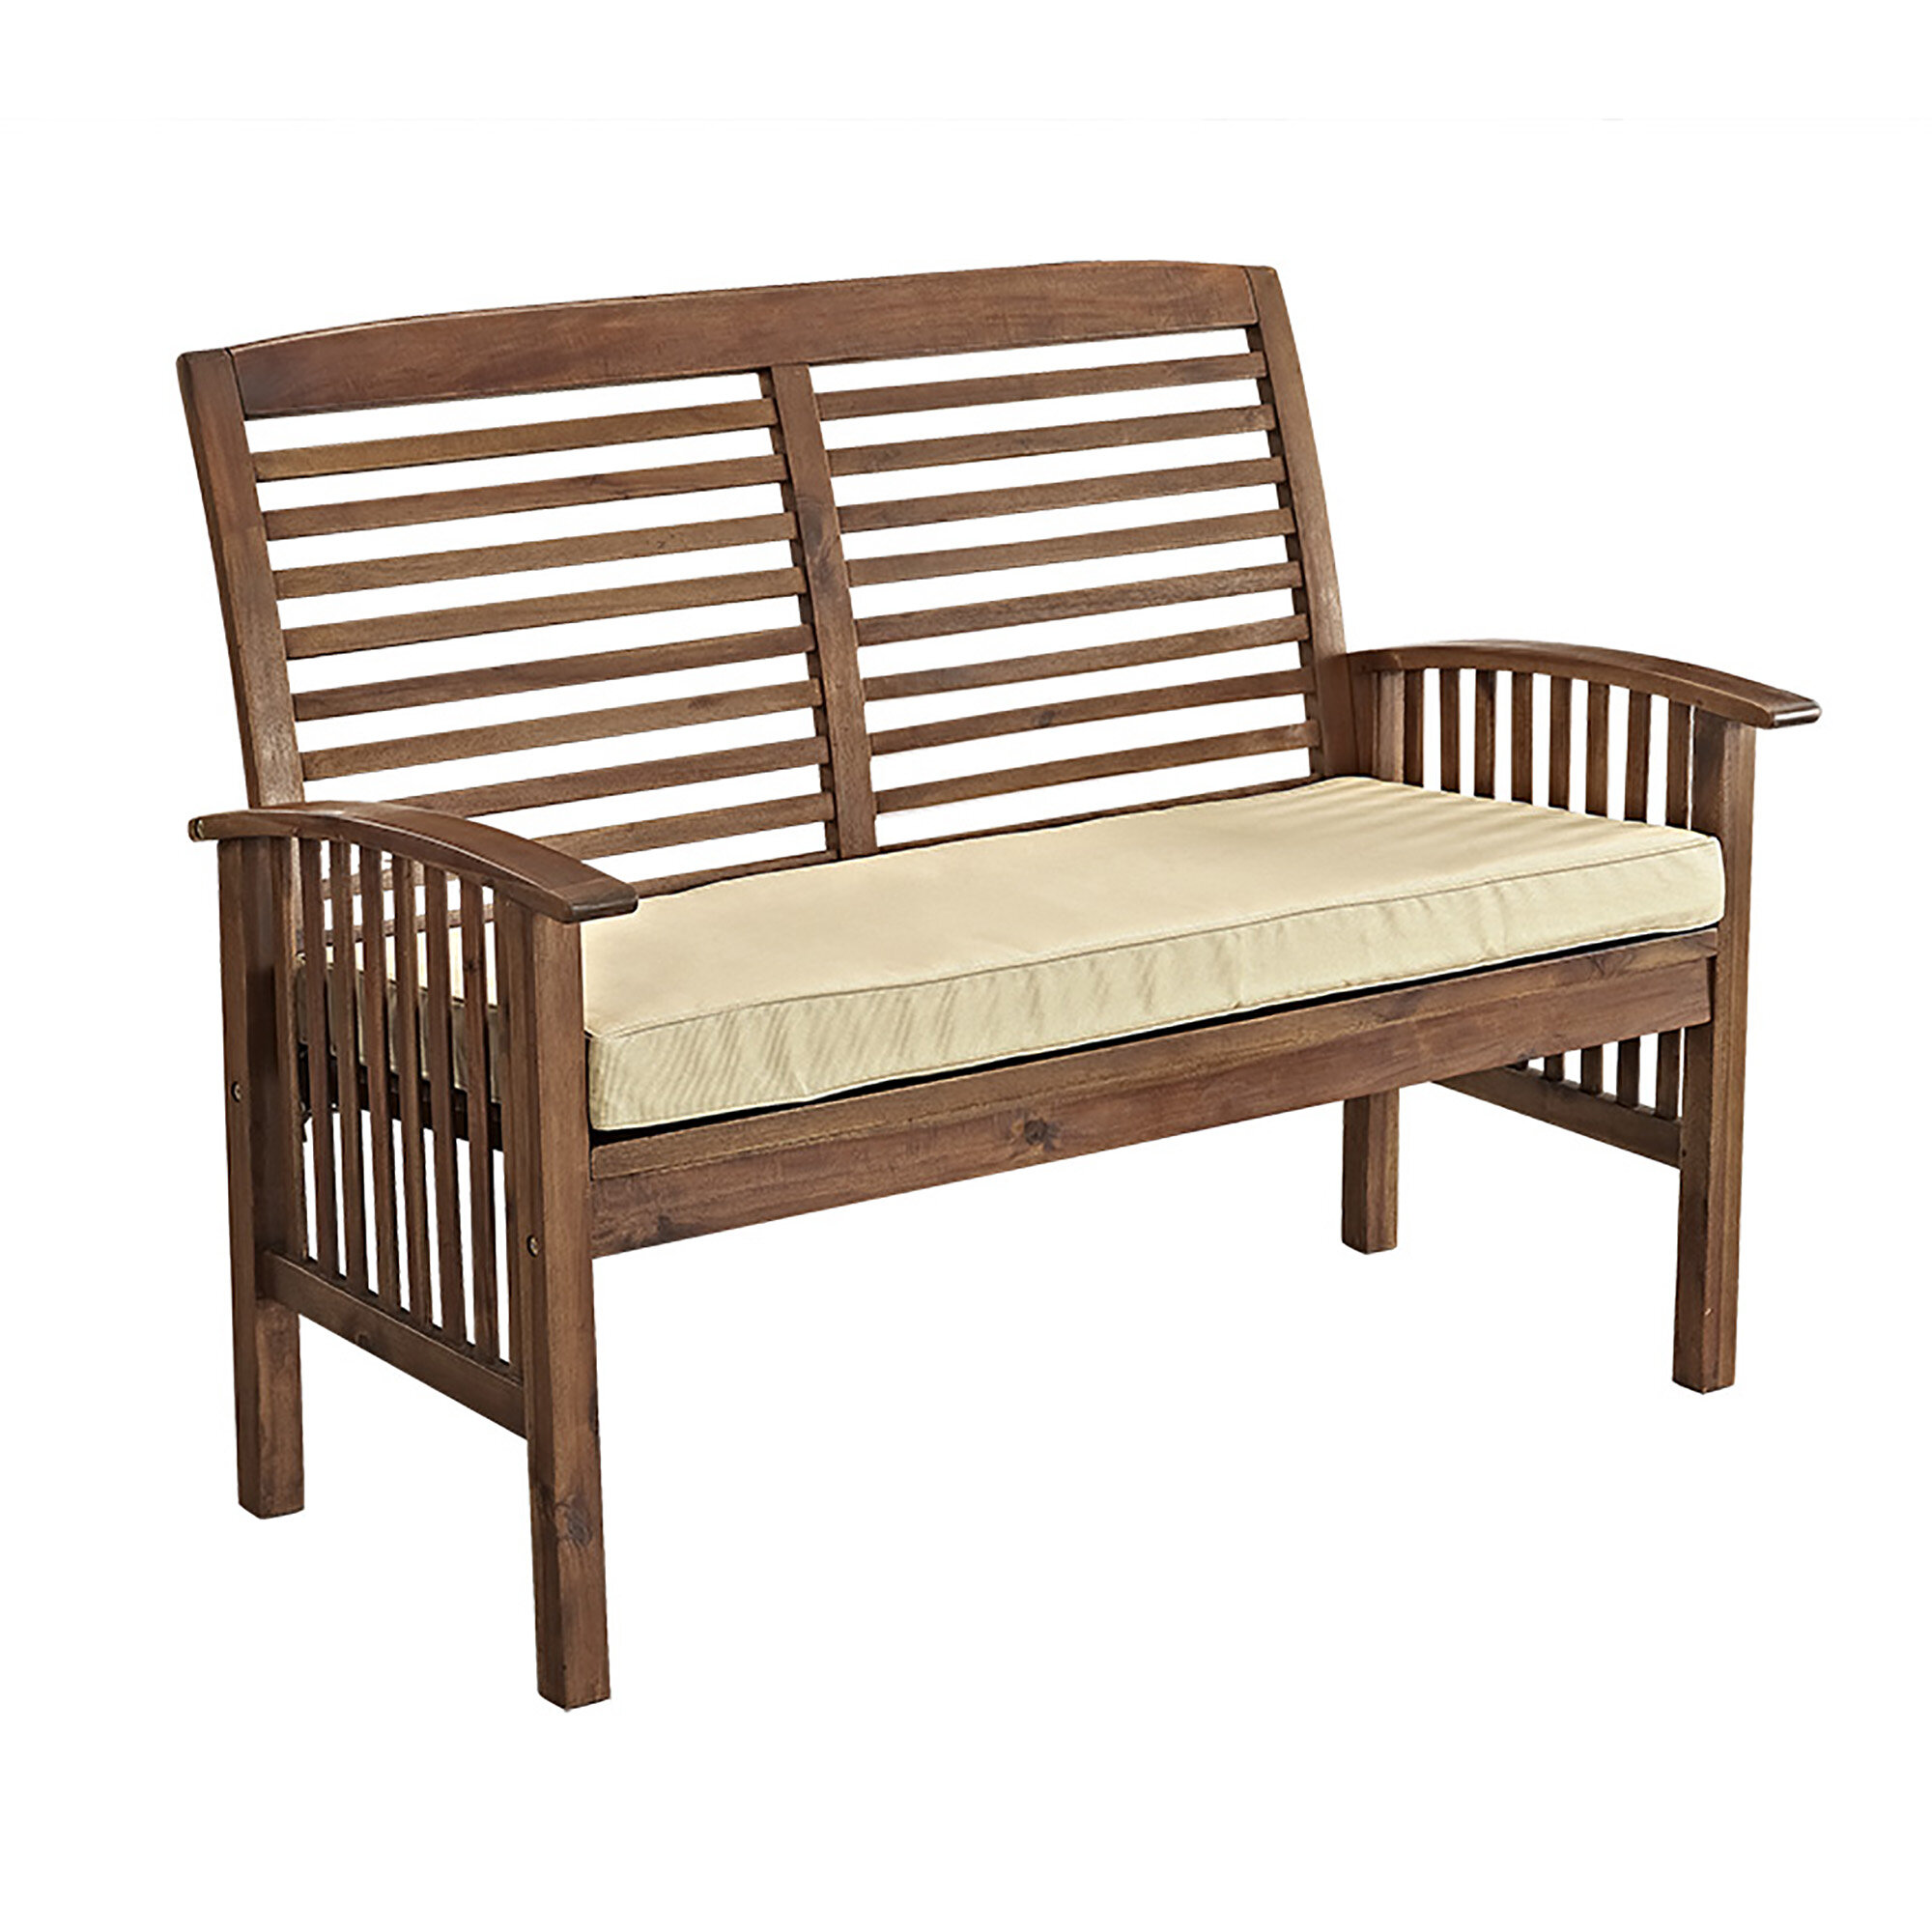 Darby Home Co Widmer Patio Loveseat & Reviews